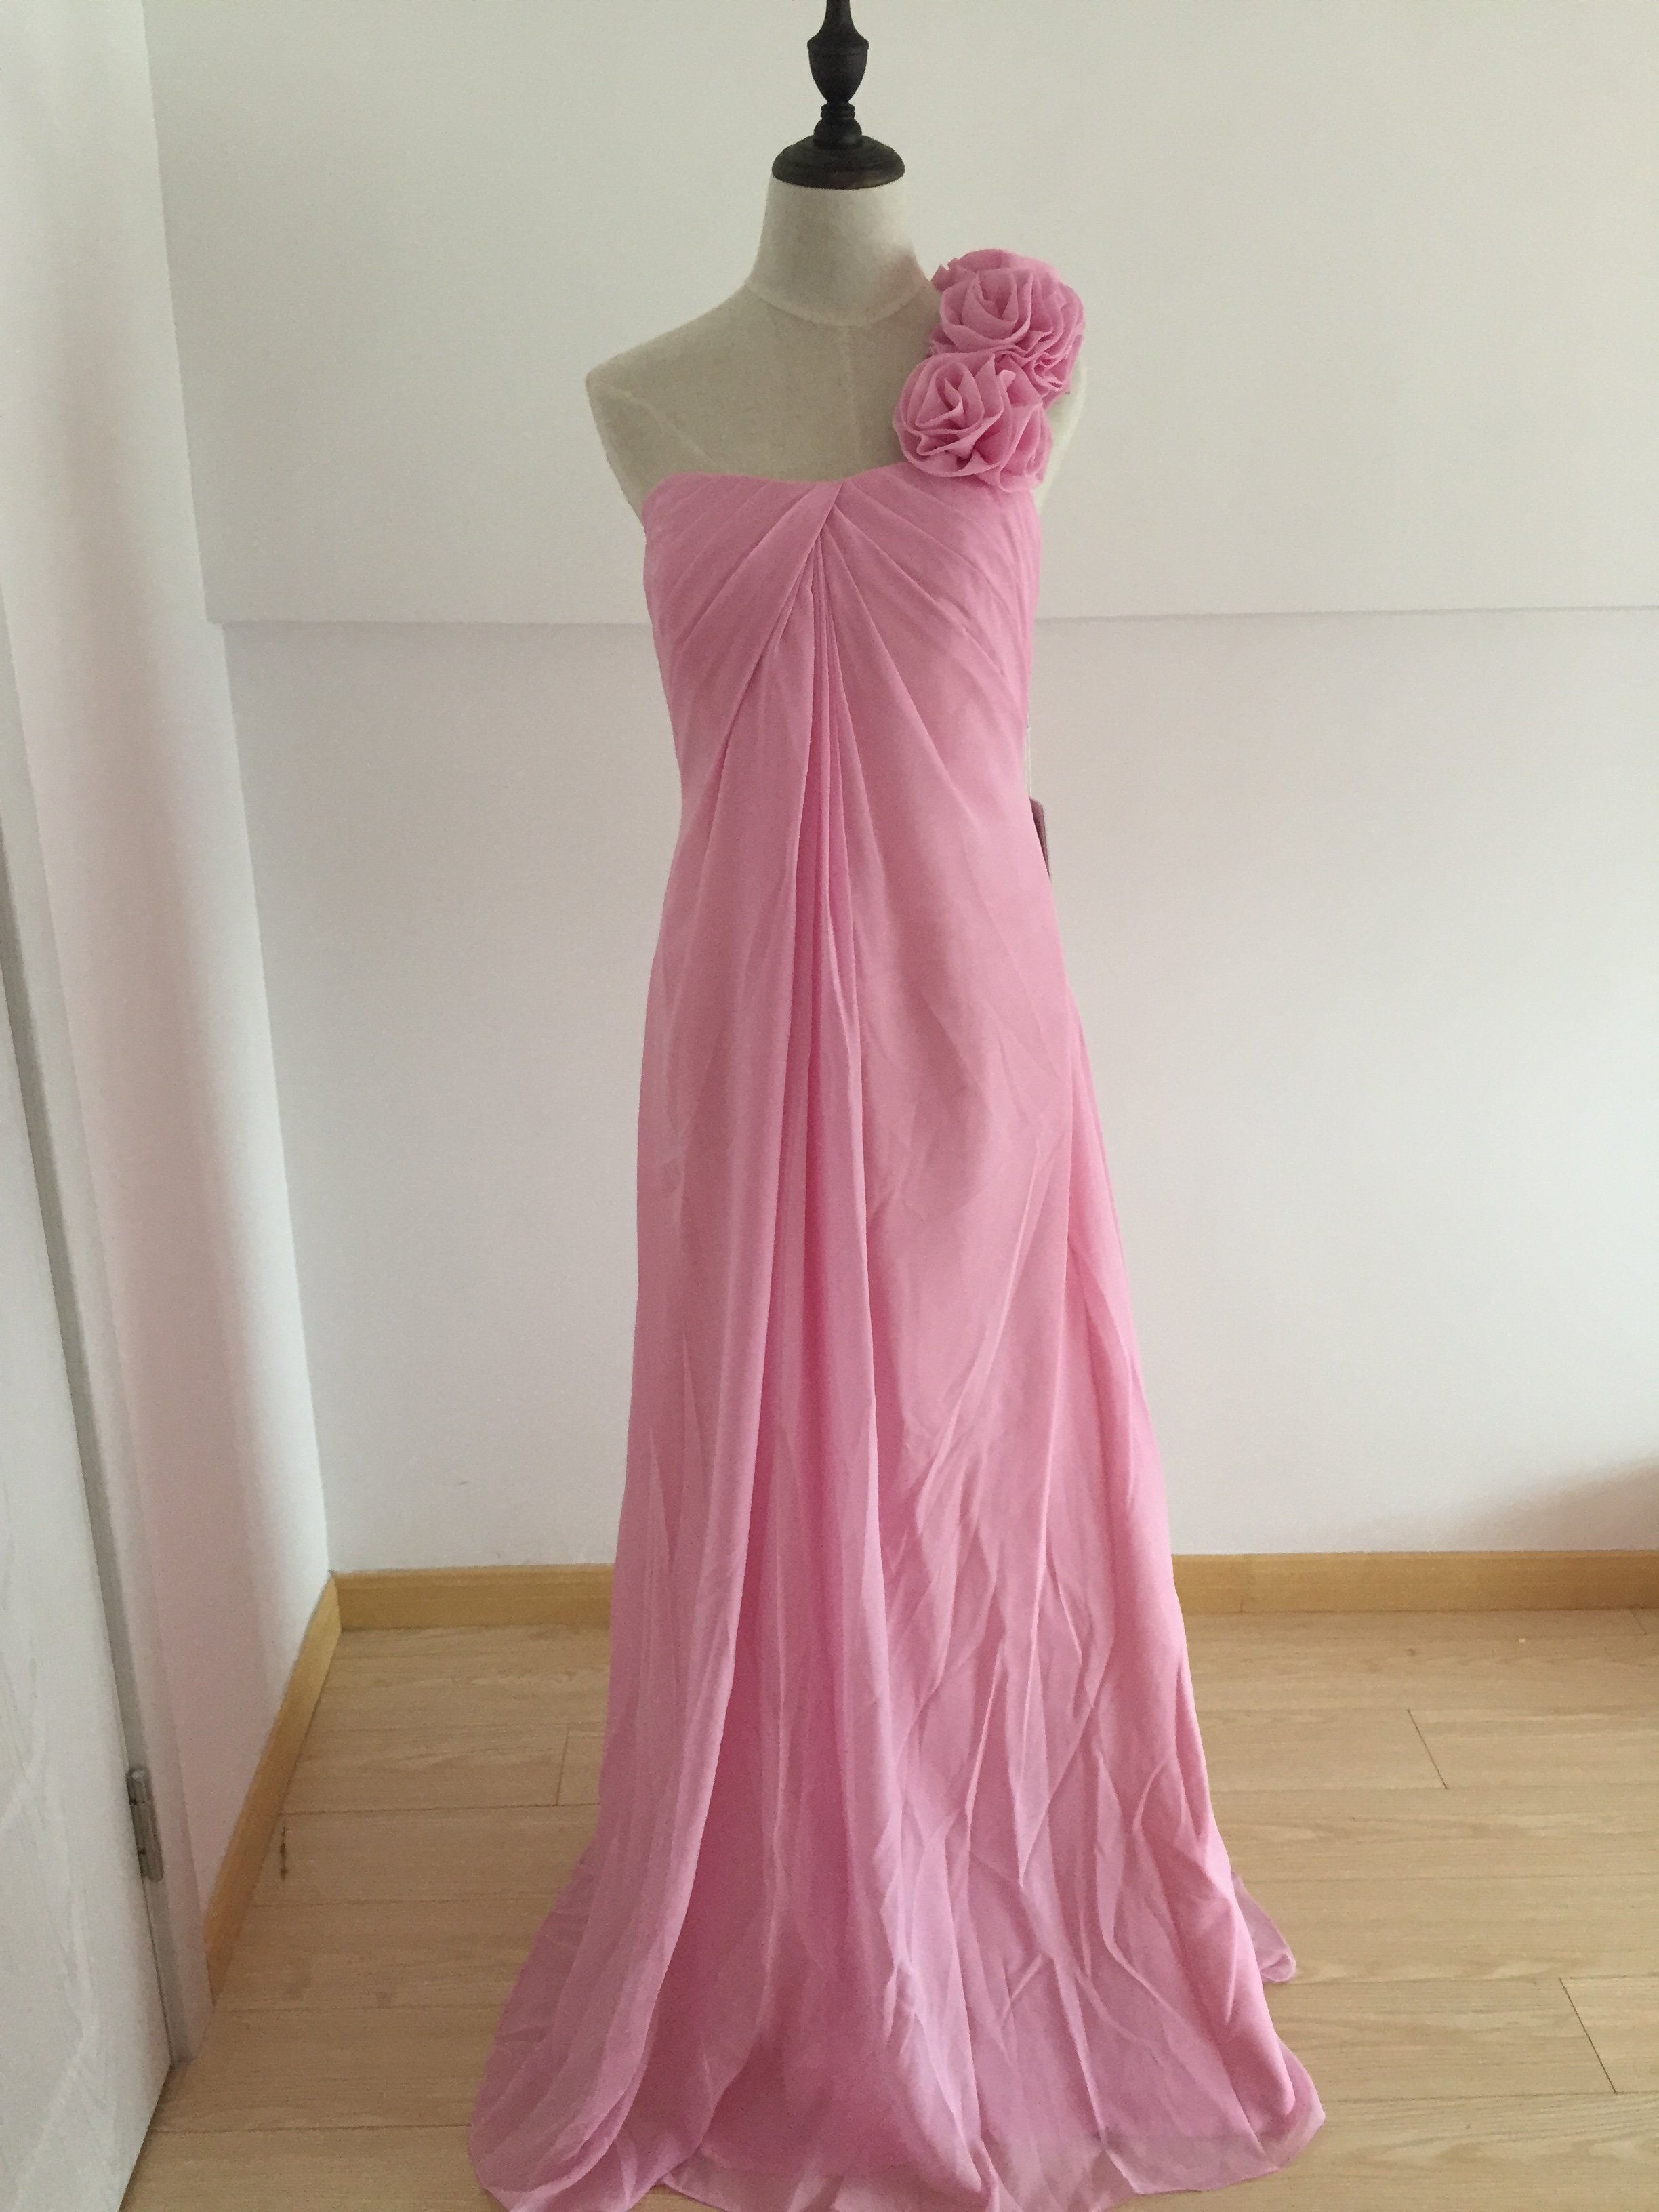 A410 Custom Made One SHoulder Prom Dresses Long , Pink Chiffon Prom ...